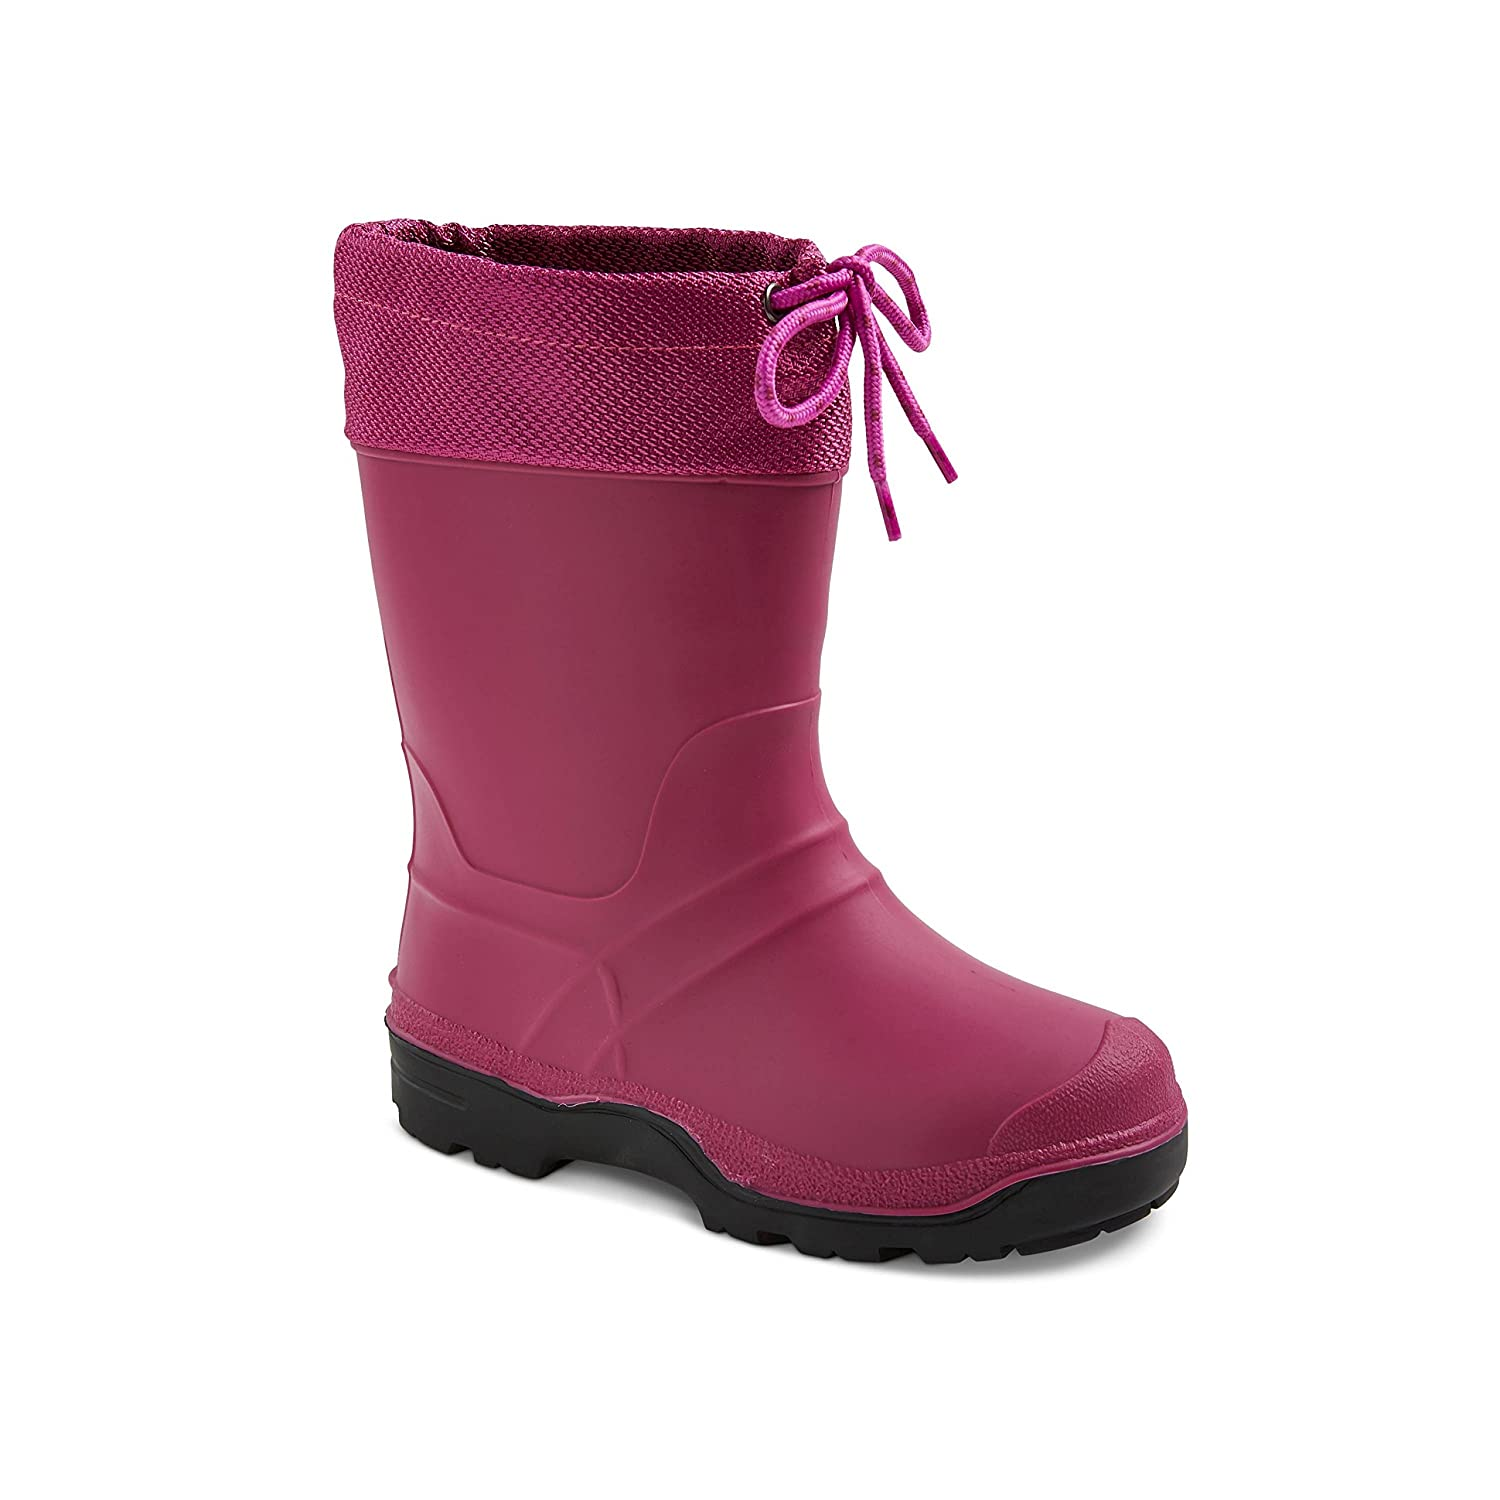 25 Degree Fahrenheit Waterproof Boots Snowmaster Icestorm Winter Boots Boys and Girls